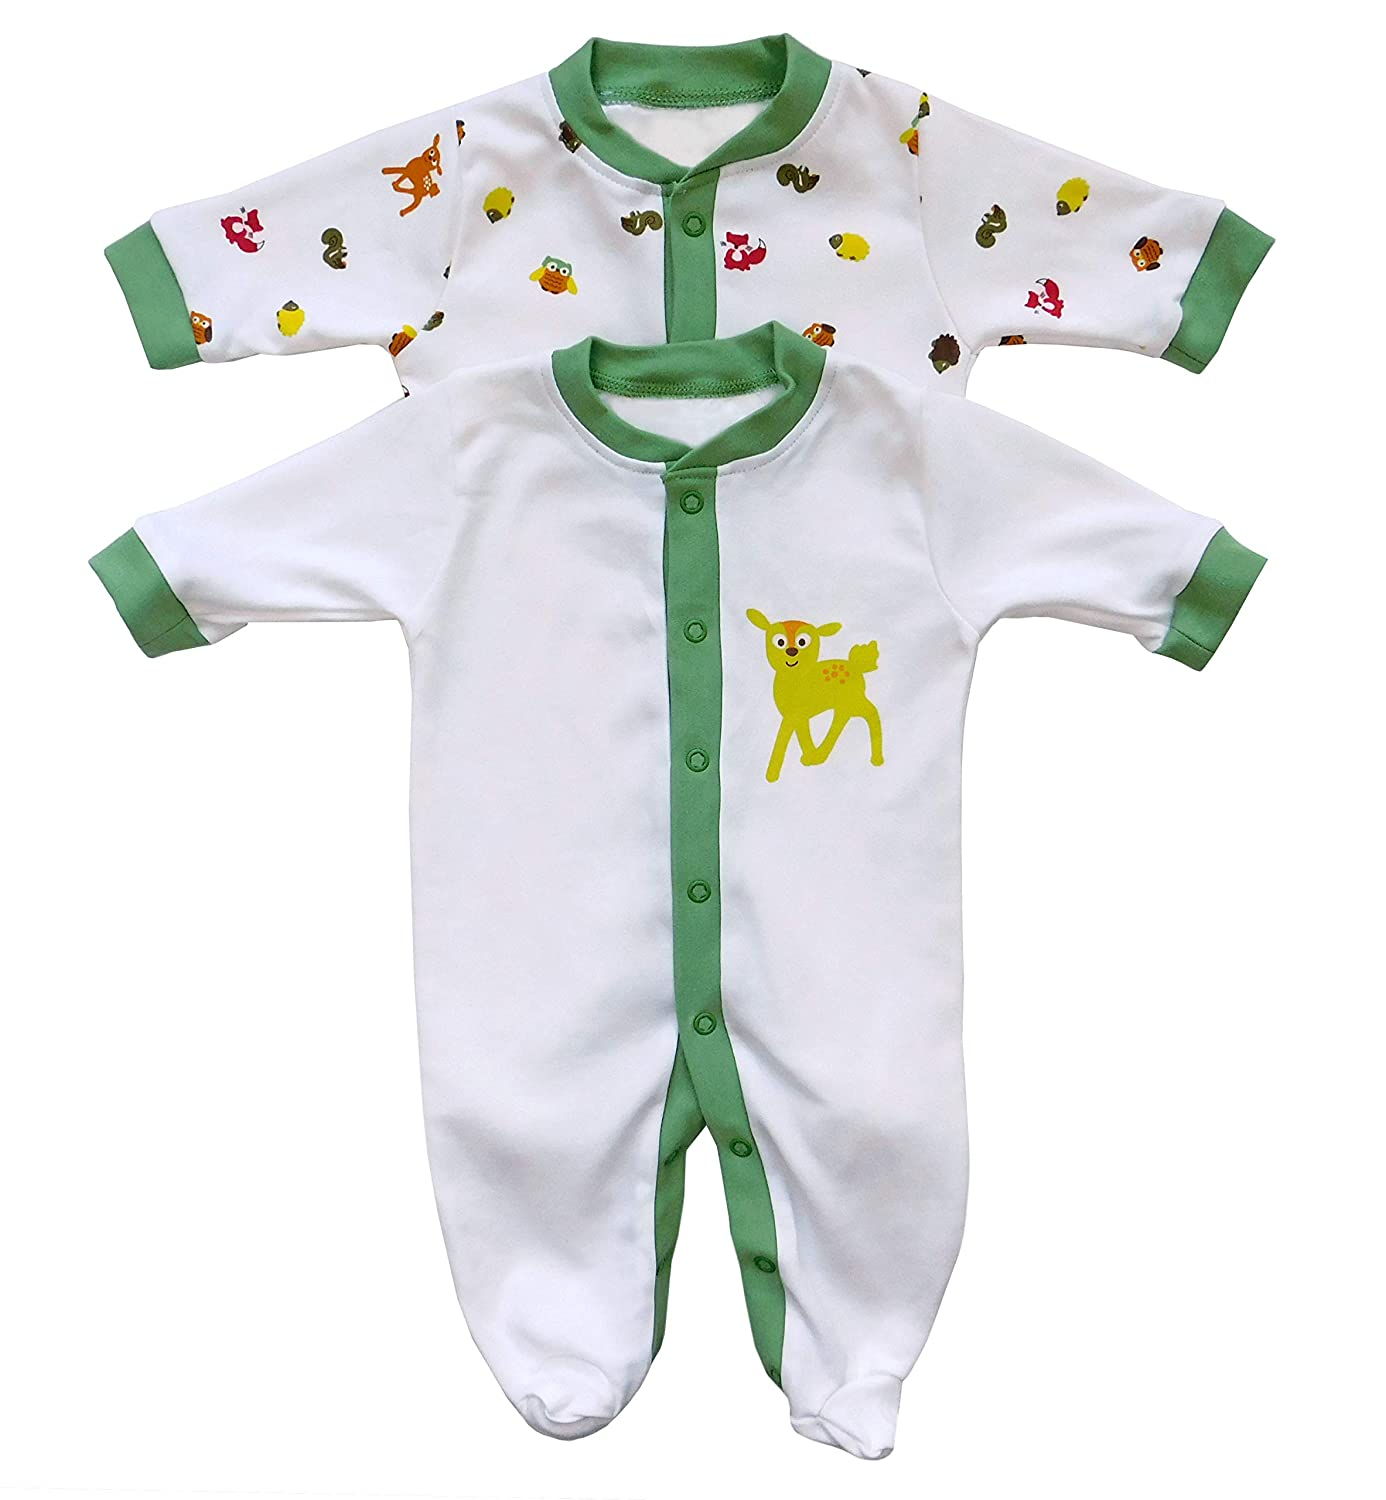 2 Pack Slumbersac Baby Sleepsuit Long Sleeve Forest Friends Size 68cm//3-6 Months